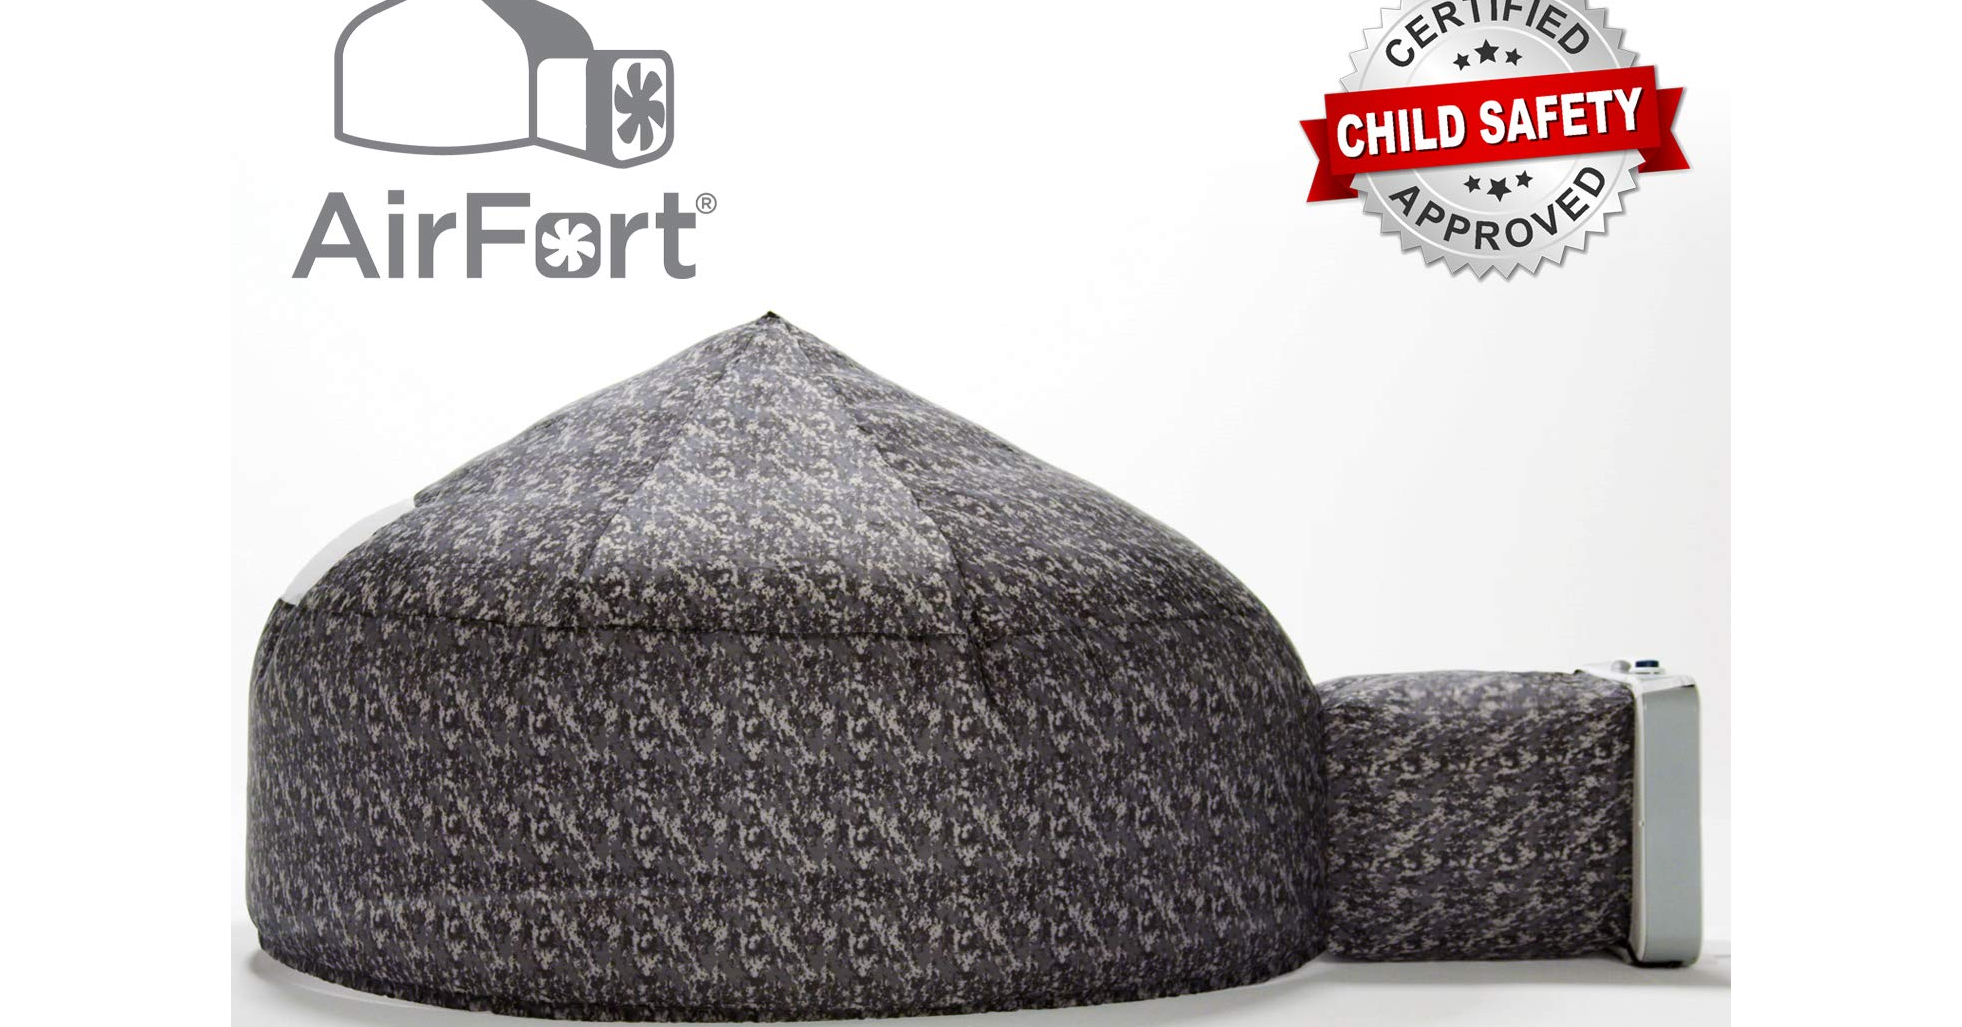 The Original AirFort Build A Fort in 30 Seconds, Fortification, Play Tents & Tunnels, Second, Dress Up, Pacific Play Tents, Building, Knit cap, , HearthSong, air fort, Cap, Knit cap, Beanie, Headgear, Font, Bean bag chair, Furniture, Rock